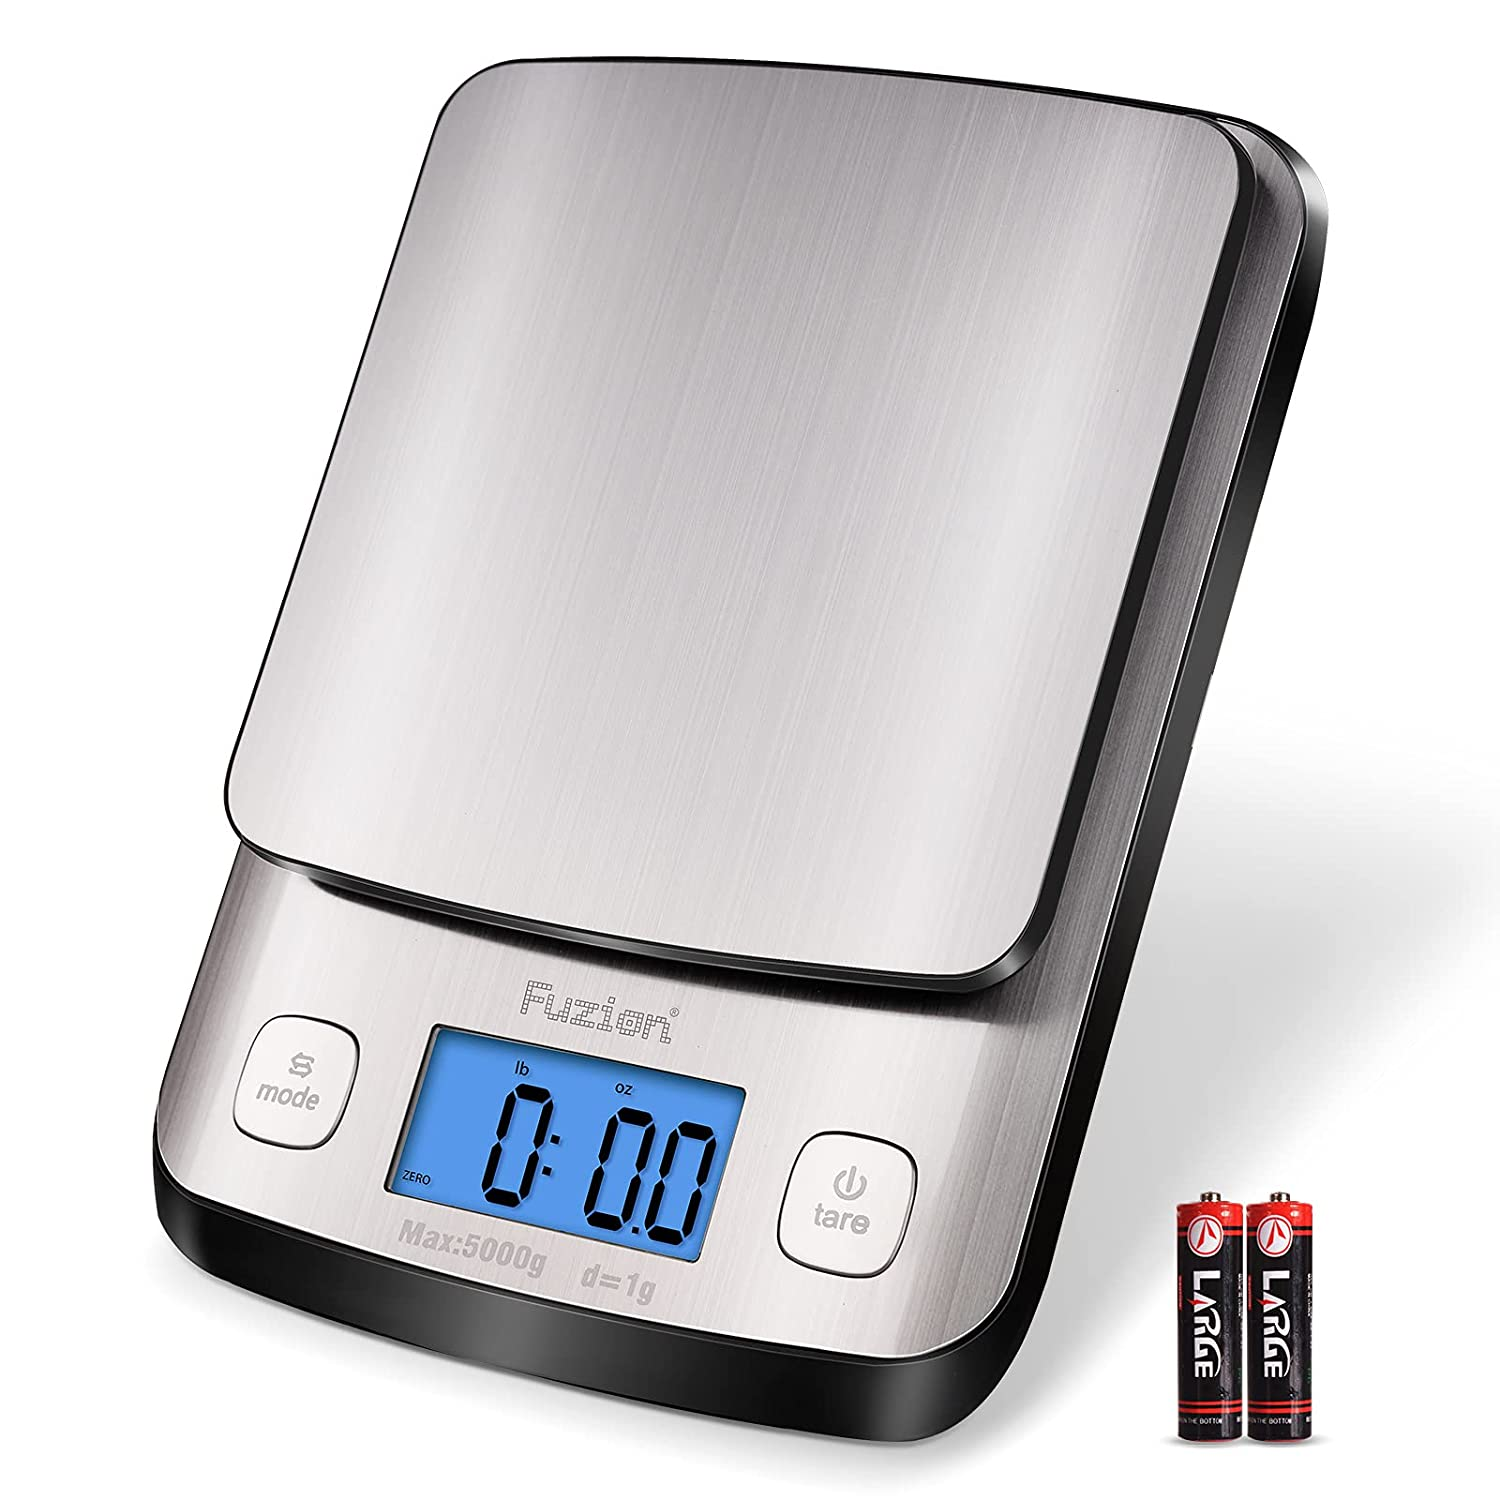 Fuzion Digital Kitchen Bombing new work Scale 11lb G Food Charlotte Mall Scales Weight